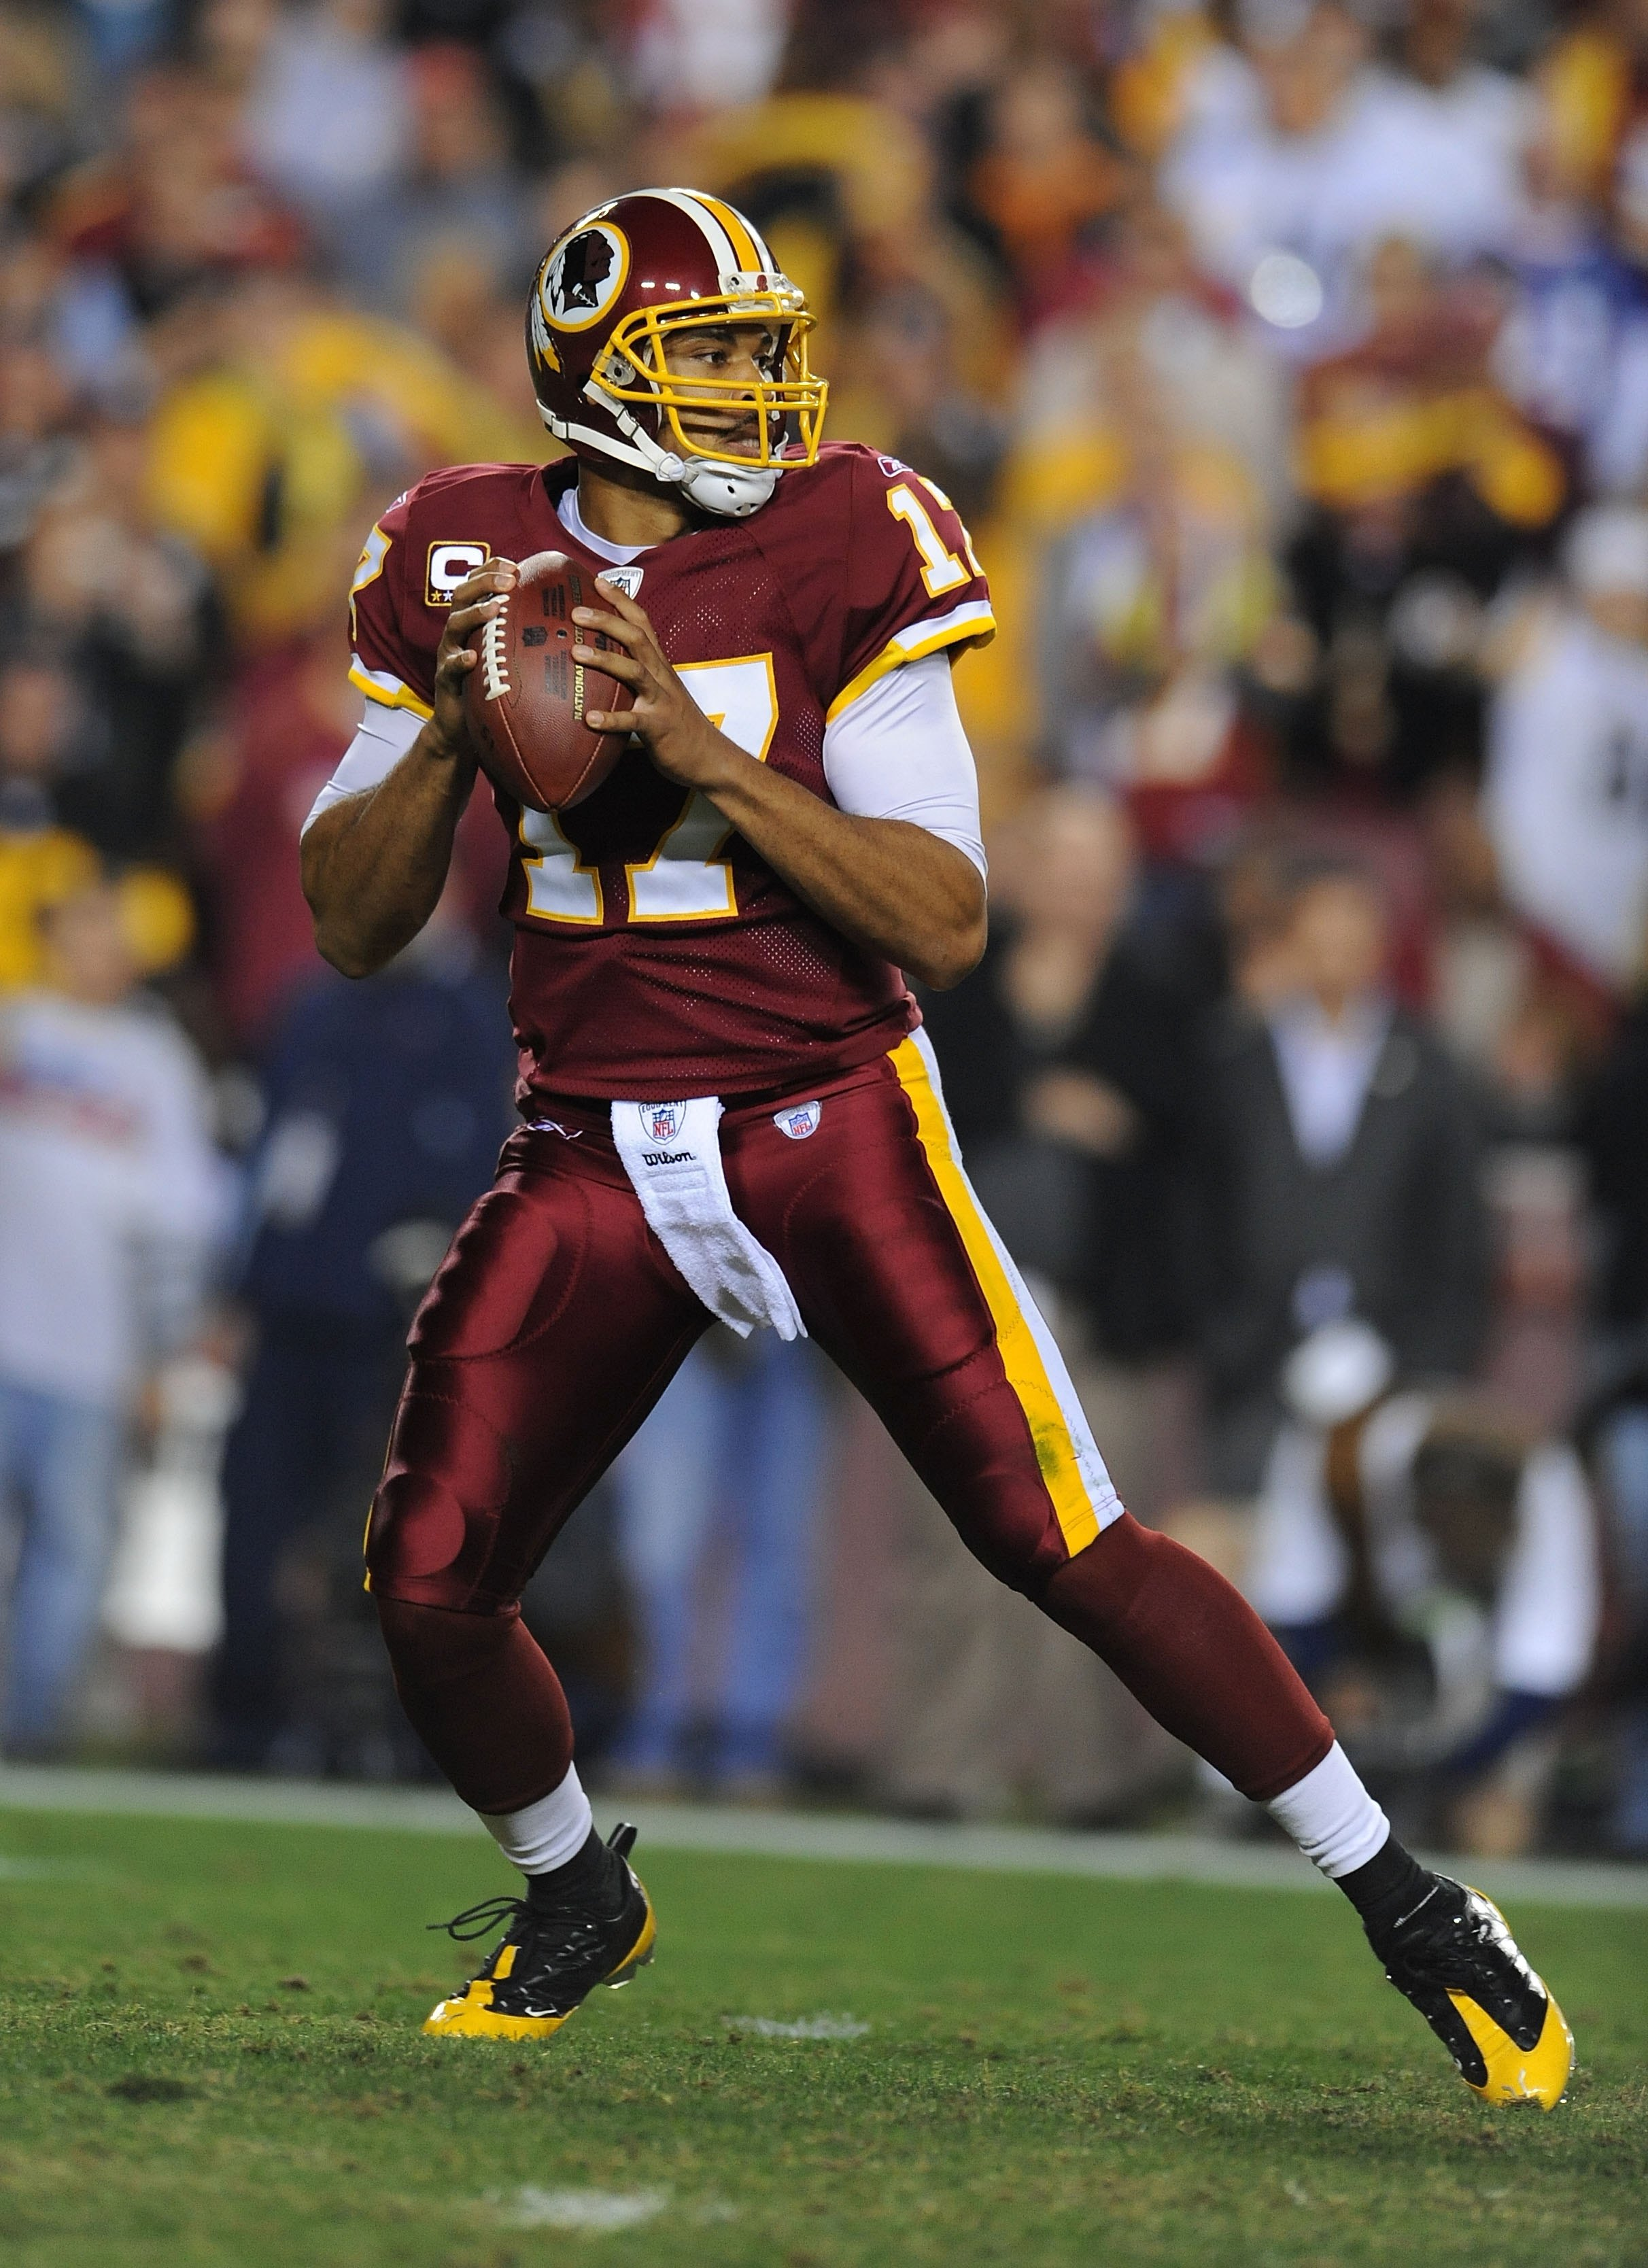 LANDOVER, MD - NOVEMBER 03:  Jason Cambell #17 of the Washington Redskins passes against the Pittsburgh Steelers during their game on November 3, 2008 at Fedex Field in Landover, Maryland.  (Photo by Al Bello/Getty Images)